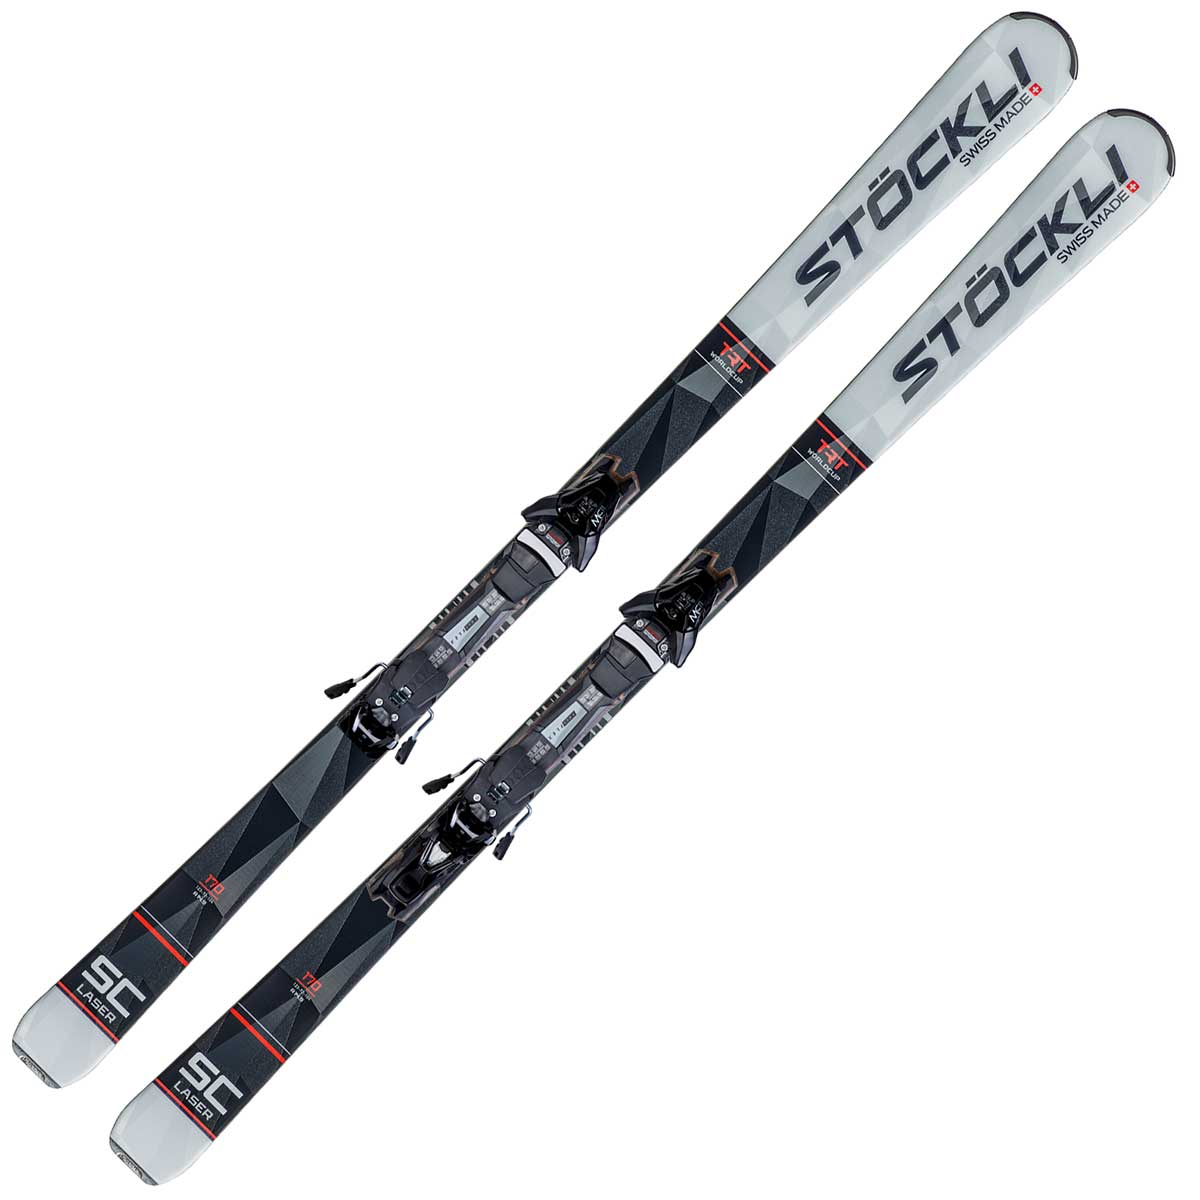 Stockli Laser SC system ski in grey and black